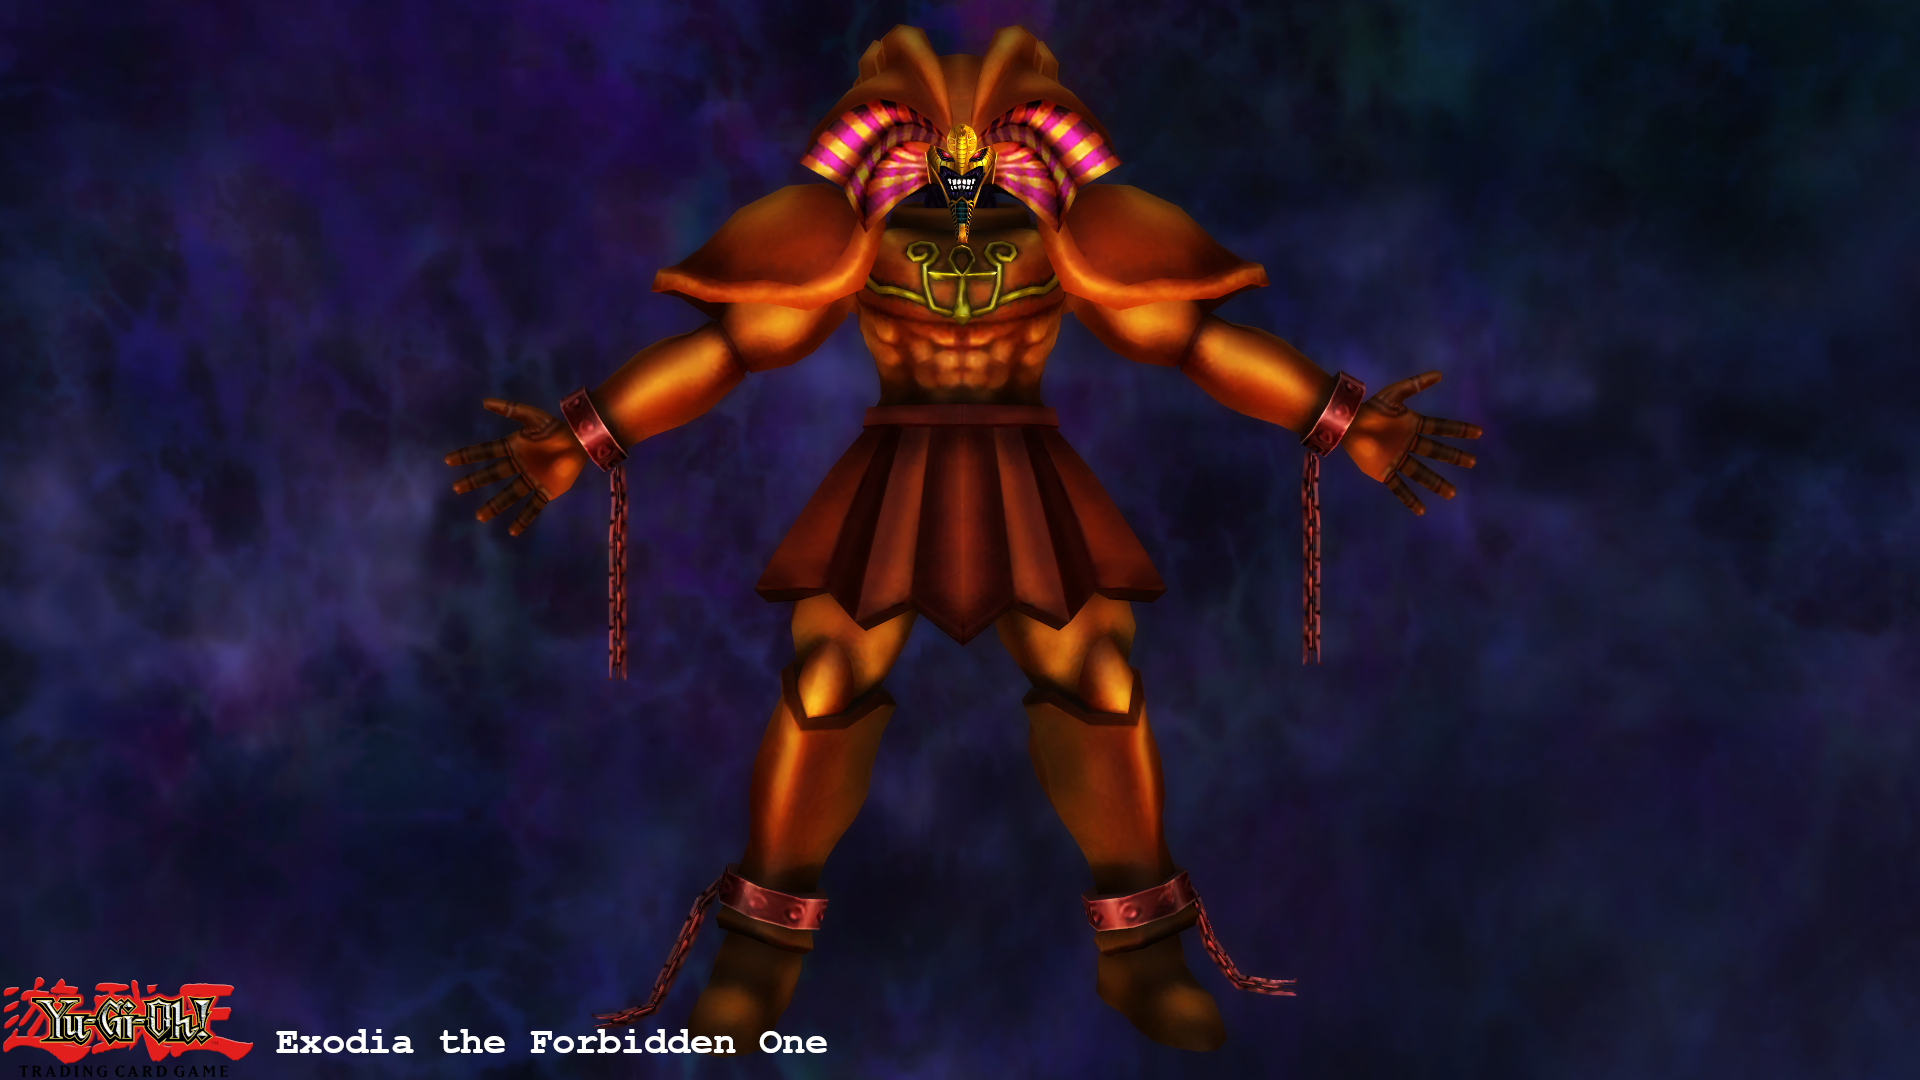 Mmd Model Exodia The Forbidden One Download By Sab64 On Deviantart